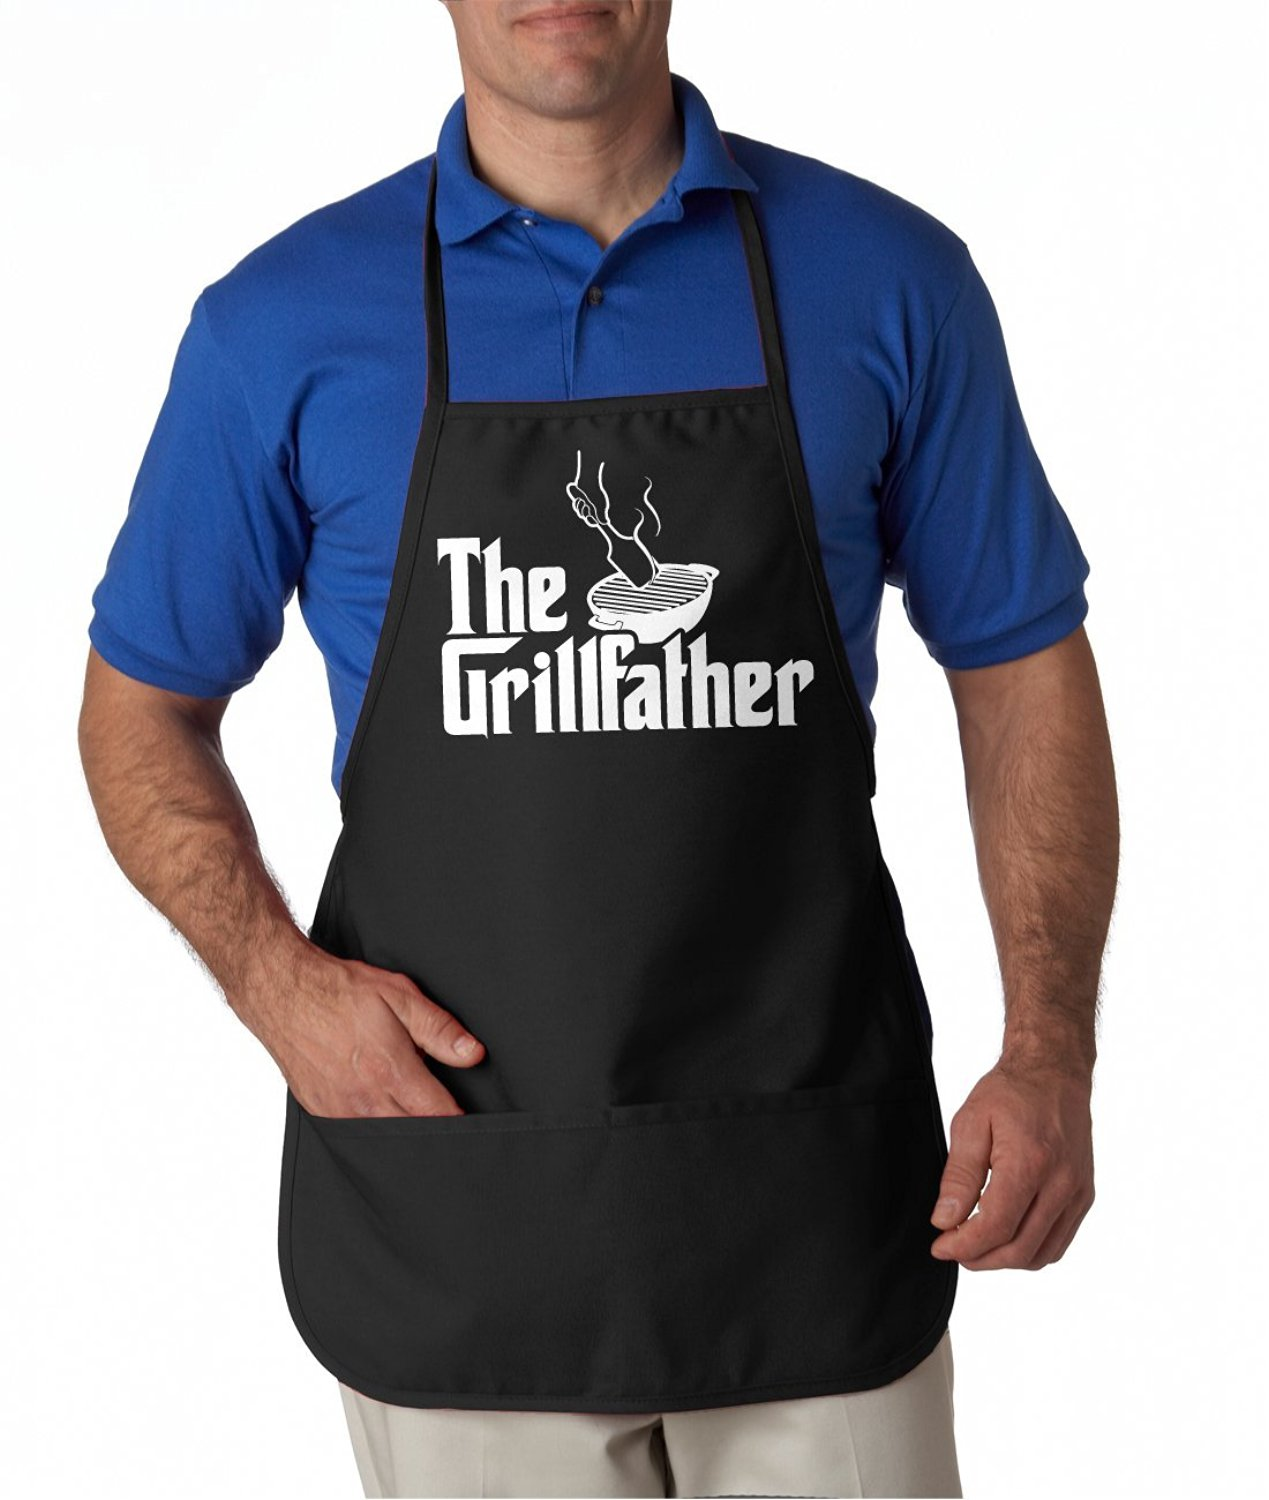 The Grillfather Apron Funny Movie Parody Summer Cookout Aprons